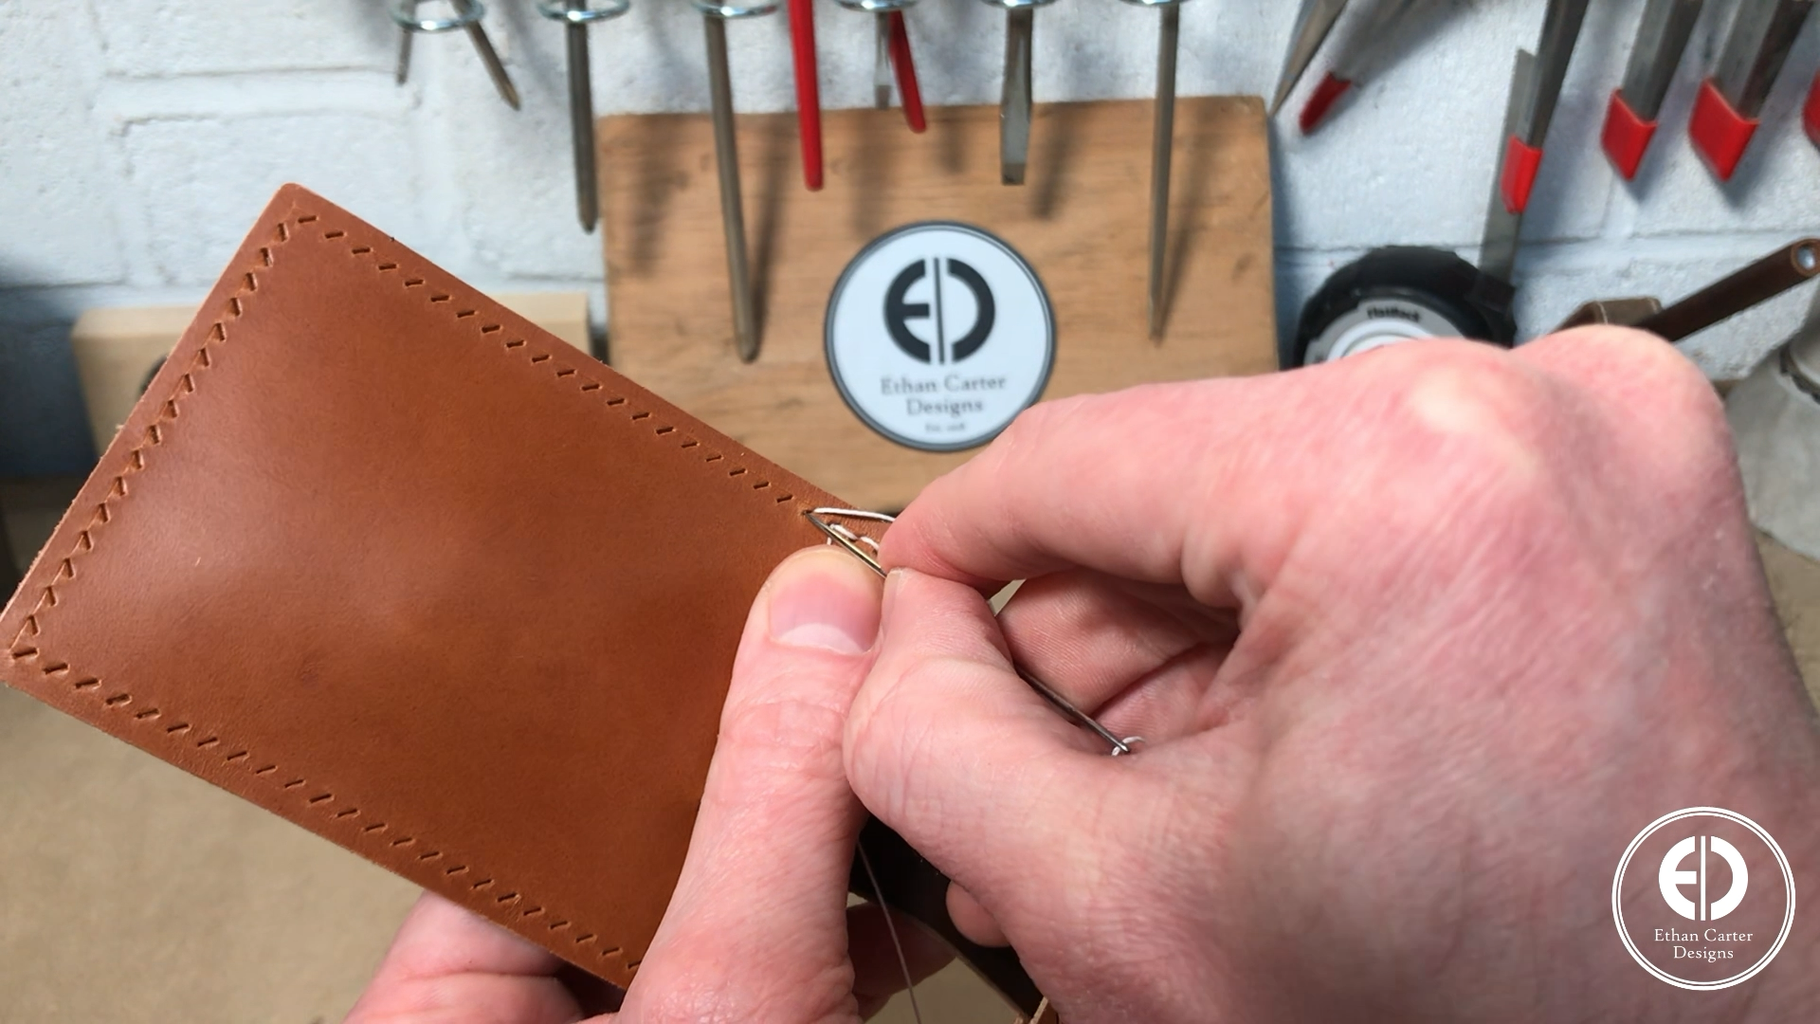 Stitching the Wallet Together